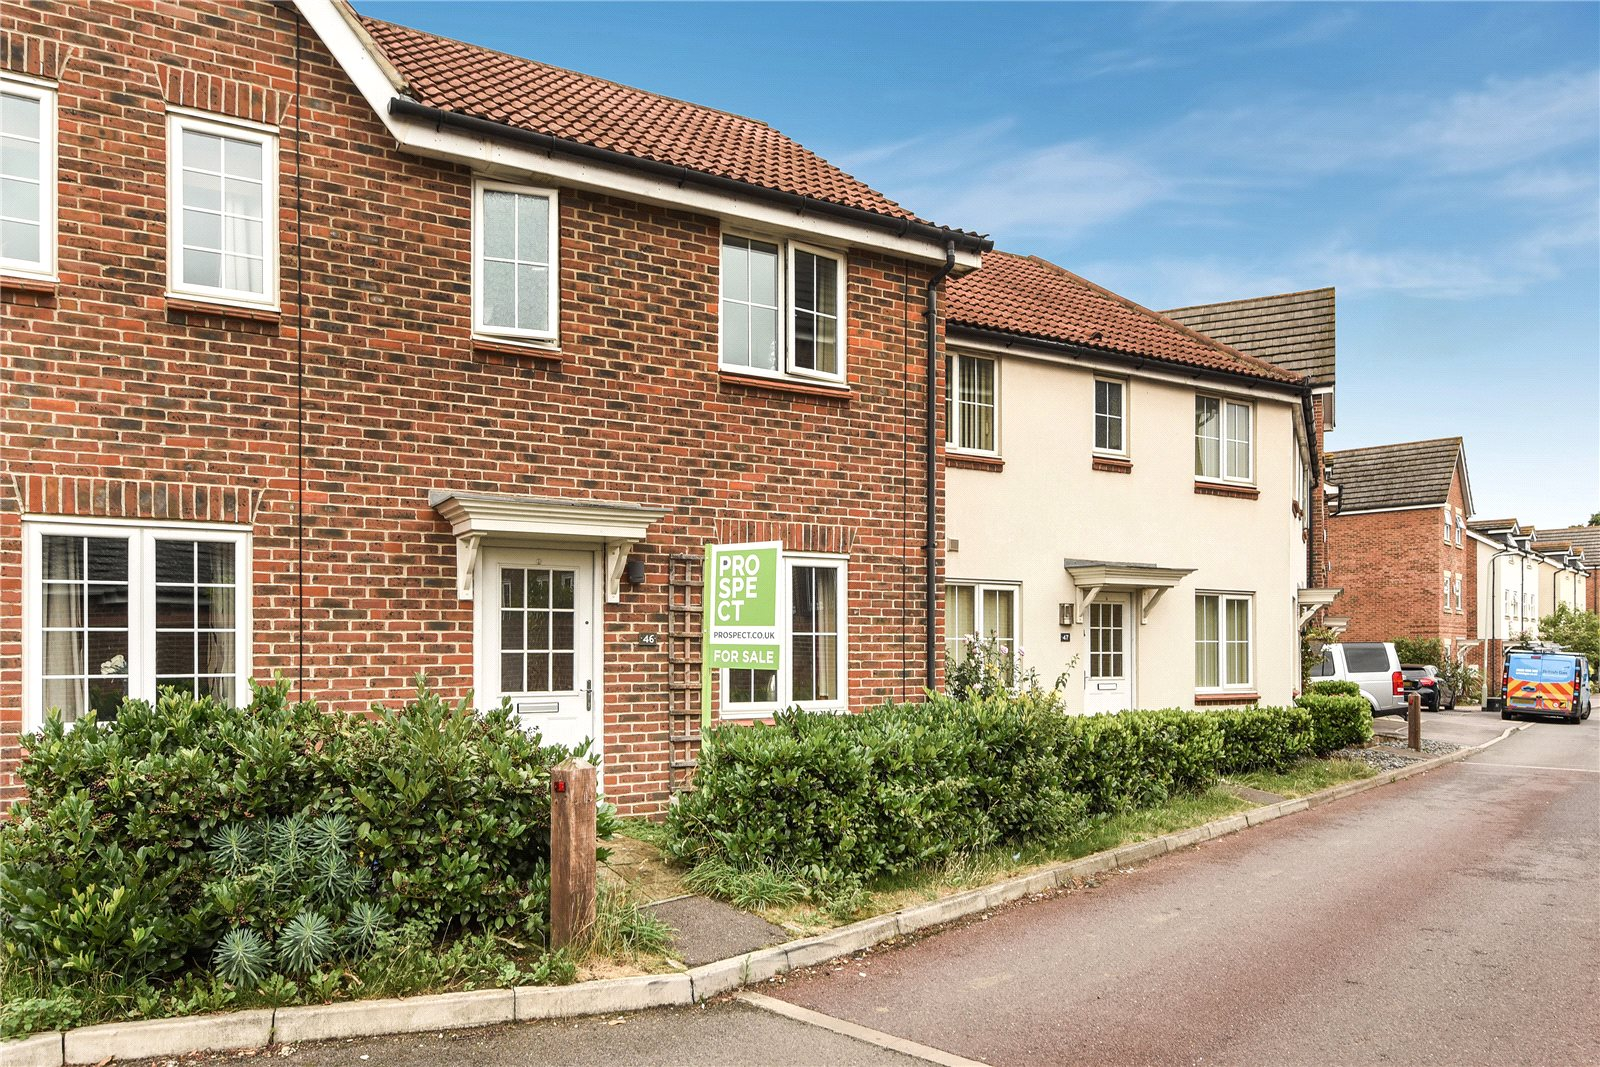 2 Bedrooms Terraced House for sale in Beatty Rise, Spencers Wood, Reading, Berkshire, RG7